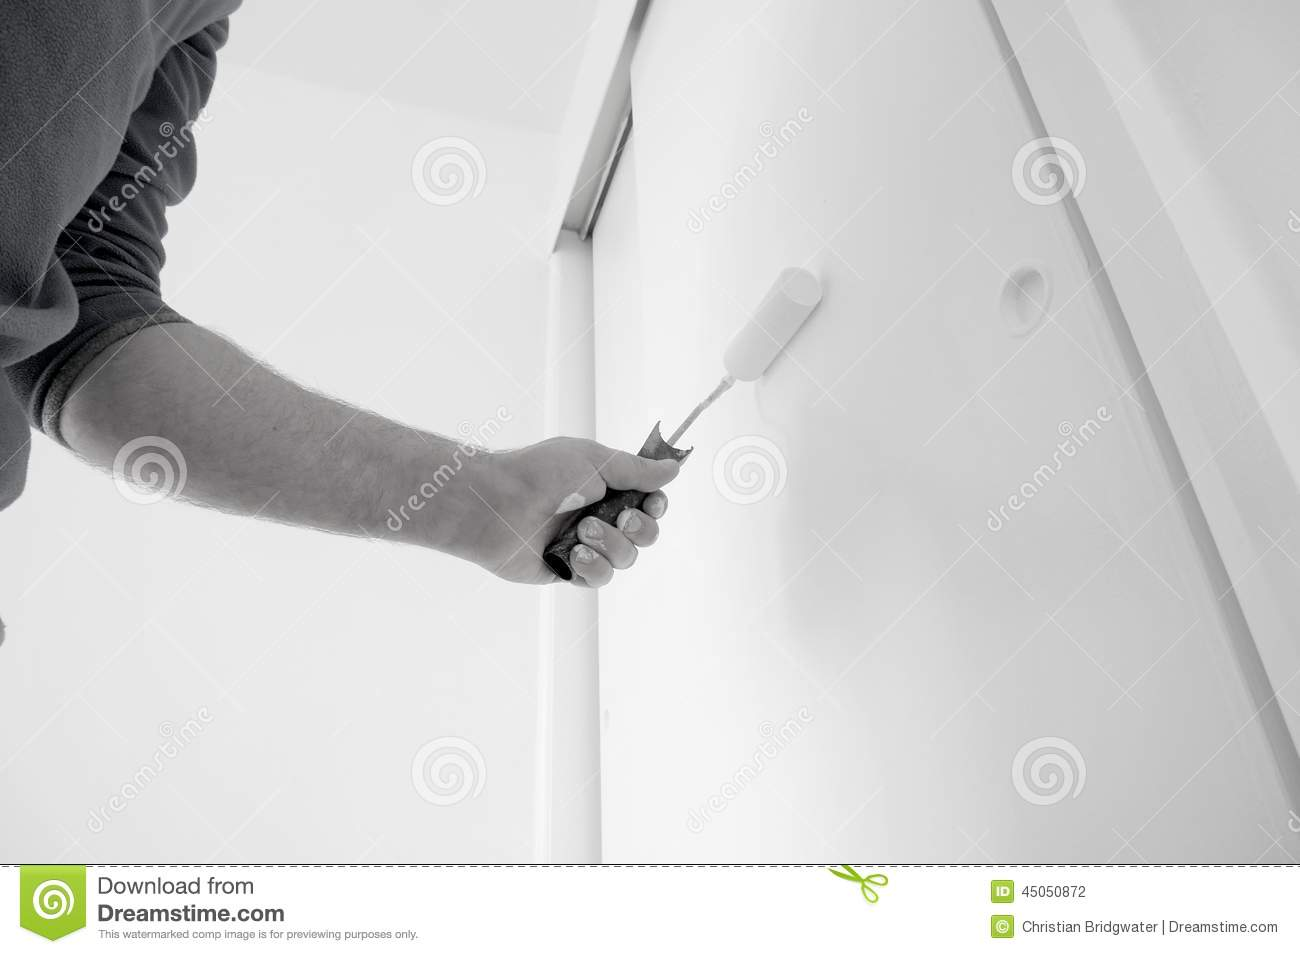 How To how to paint a door with a roller images : Painting door roller B stock photo. Image of paint, wood - 45050872